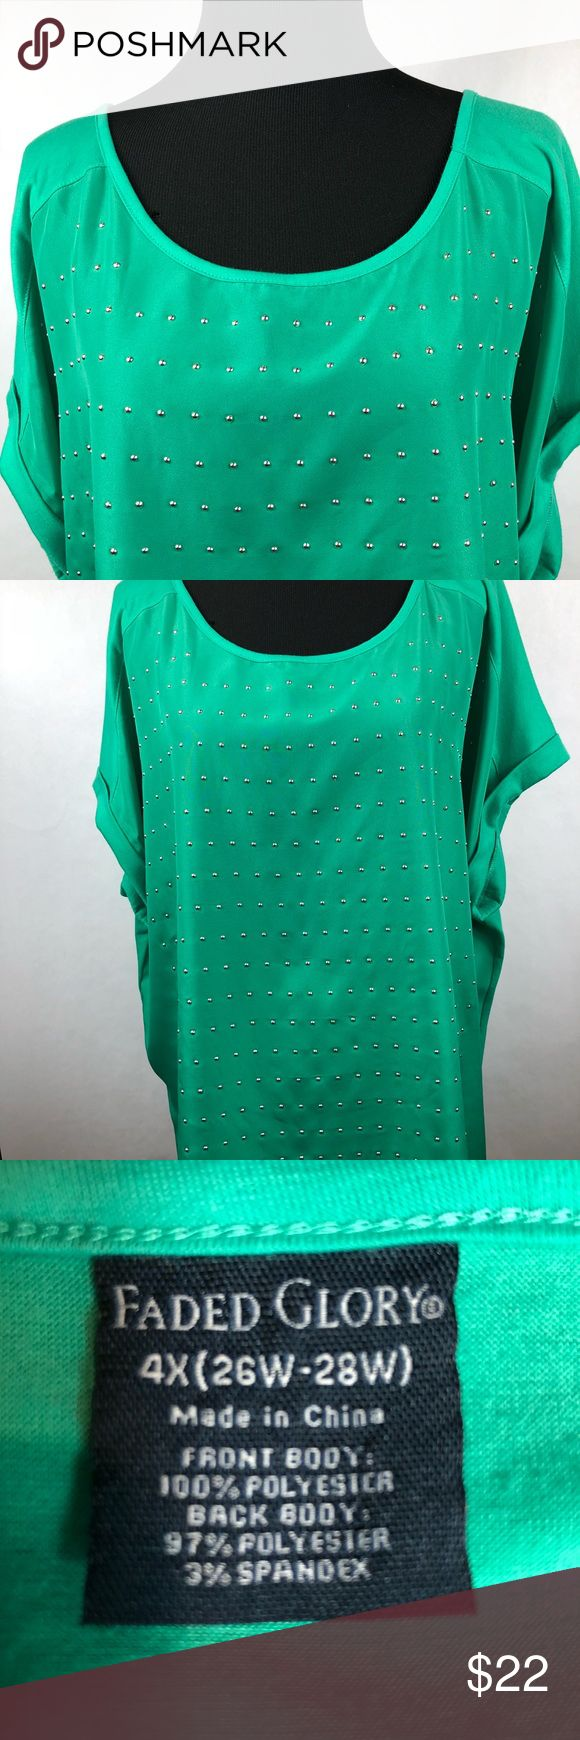 "Faded Glory Women's Green short sleeve4X (26W-28W) Beautiful Faded Glory Women's Green short sleeve top with silver embellishments on the front. Fabric: 100% polyester on front and 97% polyester and 3% spandex on the back. Size: 4X (26W-28W) Measurements: 30"" Armpit to armpit 28"" Top of shoulder to the bottom of the shirt The shirt is 2 inches longer in the back  Excellent condition Faded Glory Tops Tees - Short Sleeve"